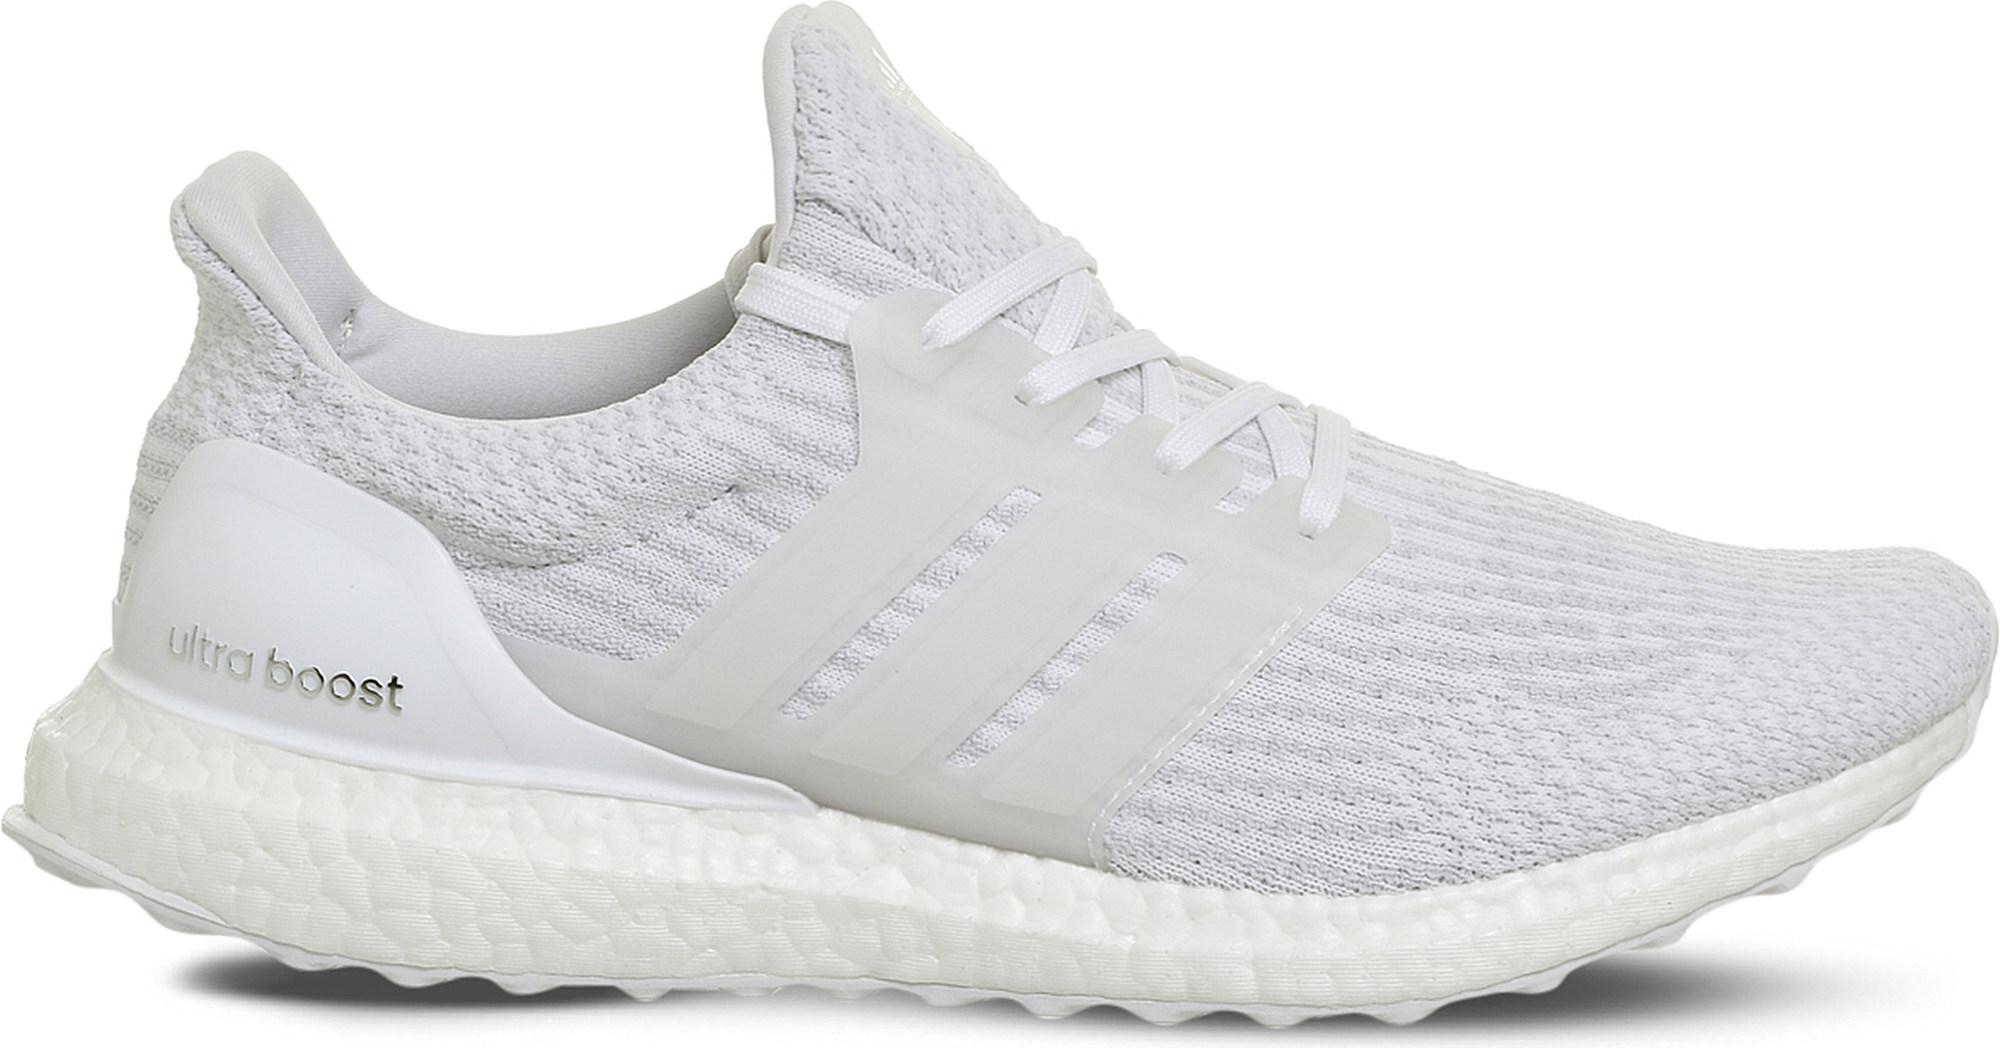 cf267ca77 adidas Ultra Boost Primeknit Trainers in White for Men - Lyst